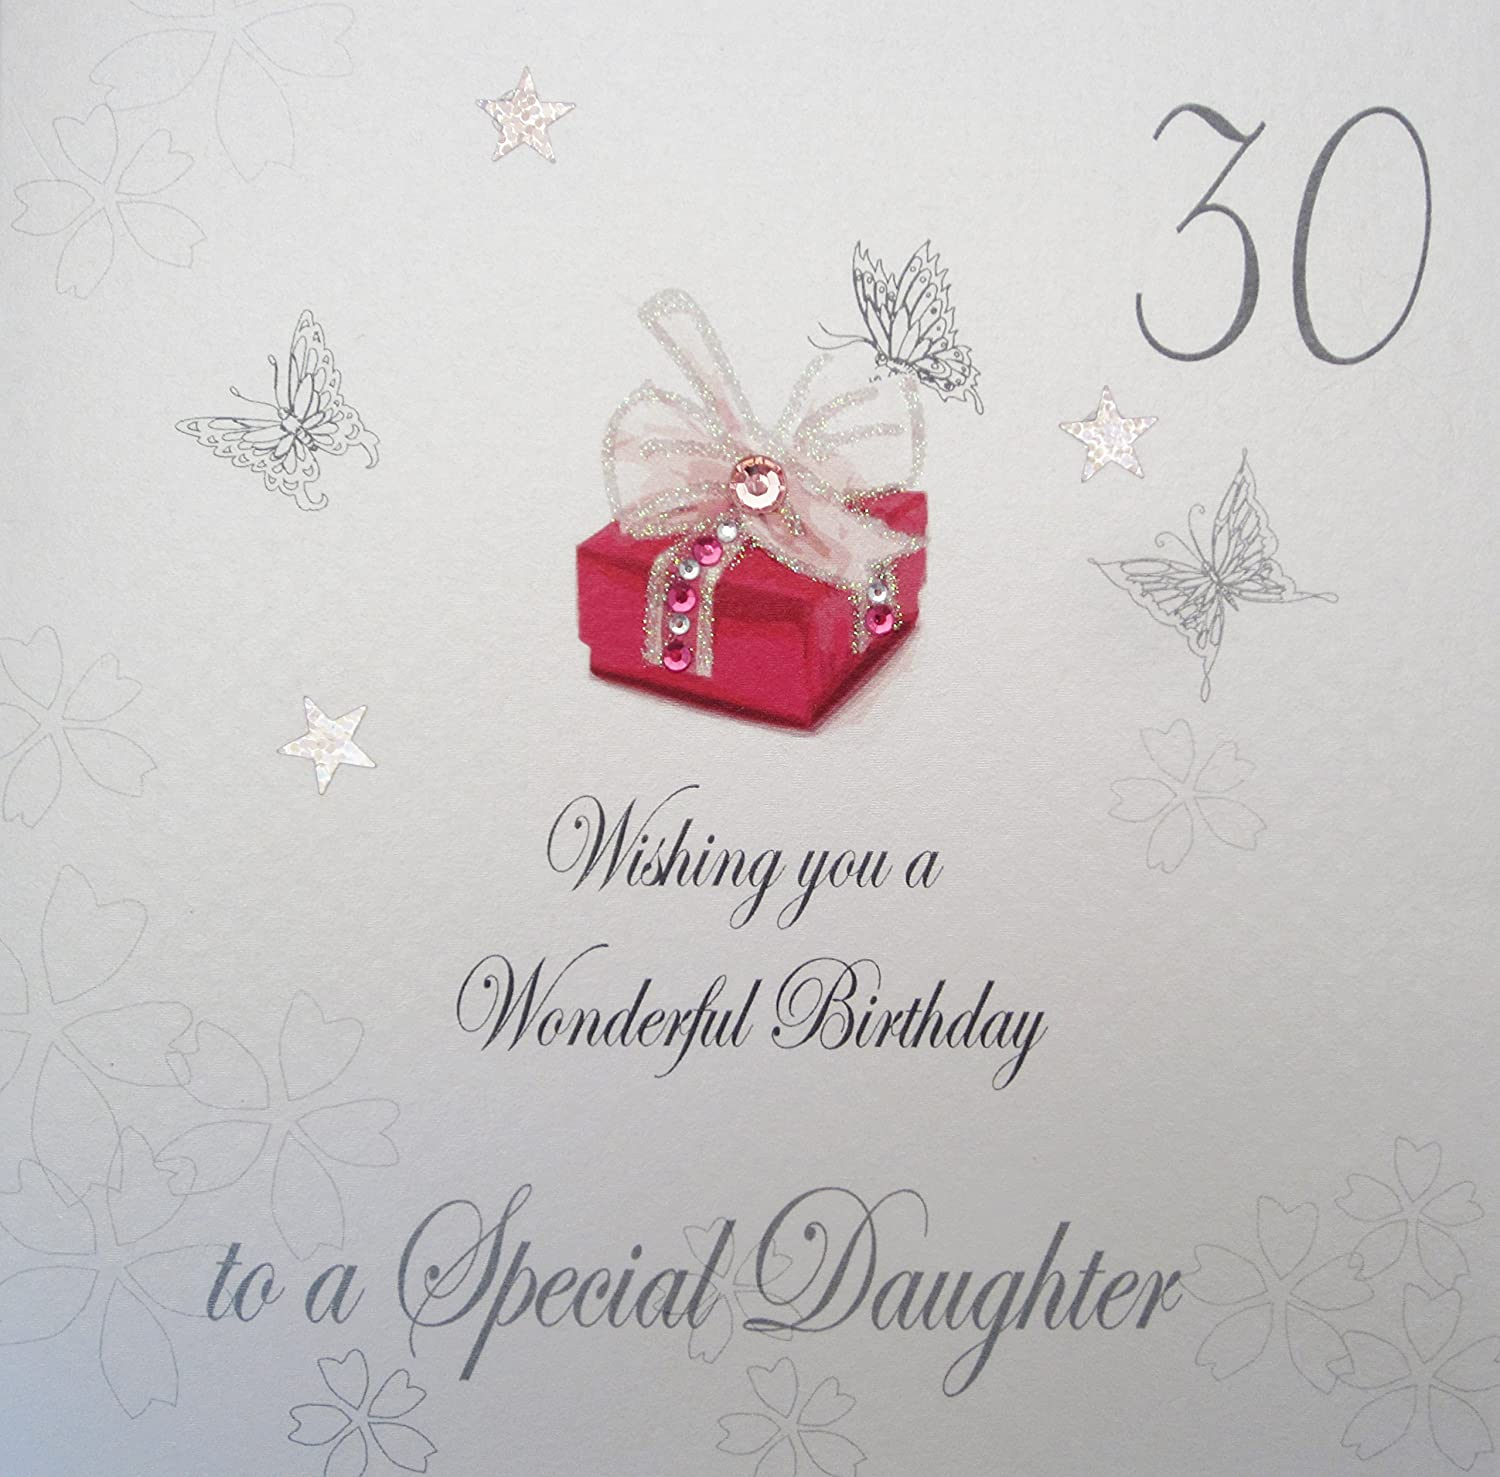 White cotton cards bdp30 d 30 wishing you a wonderful birthday to a white cotton cards bdp30 d 30 wishing you a wonderful birthday to a special daughter handmade 30th birthday card white amazon kitchen home kristyandbryce Choice Image